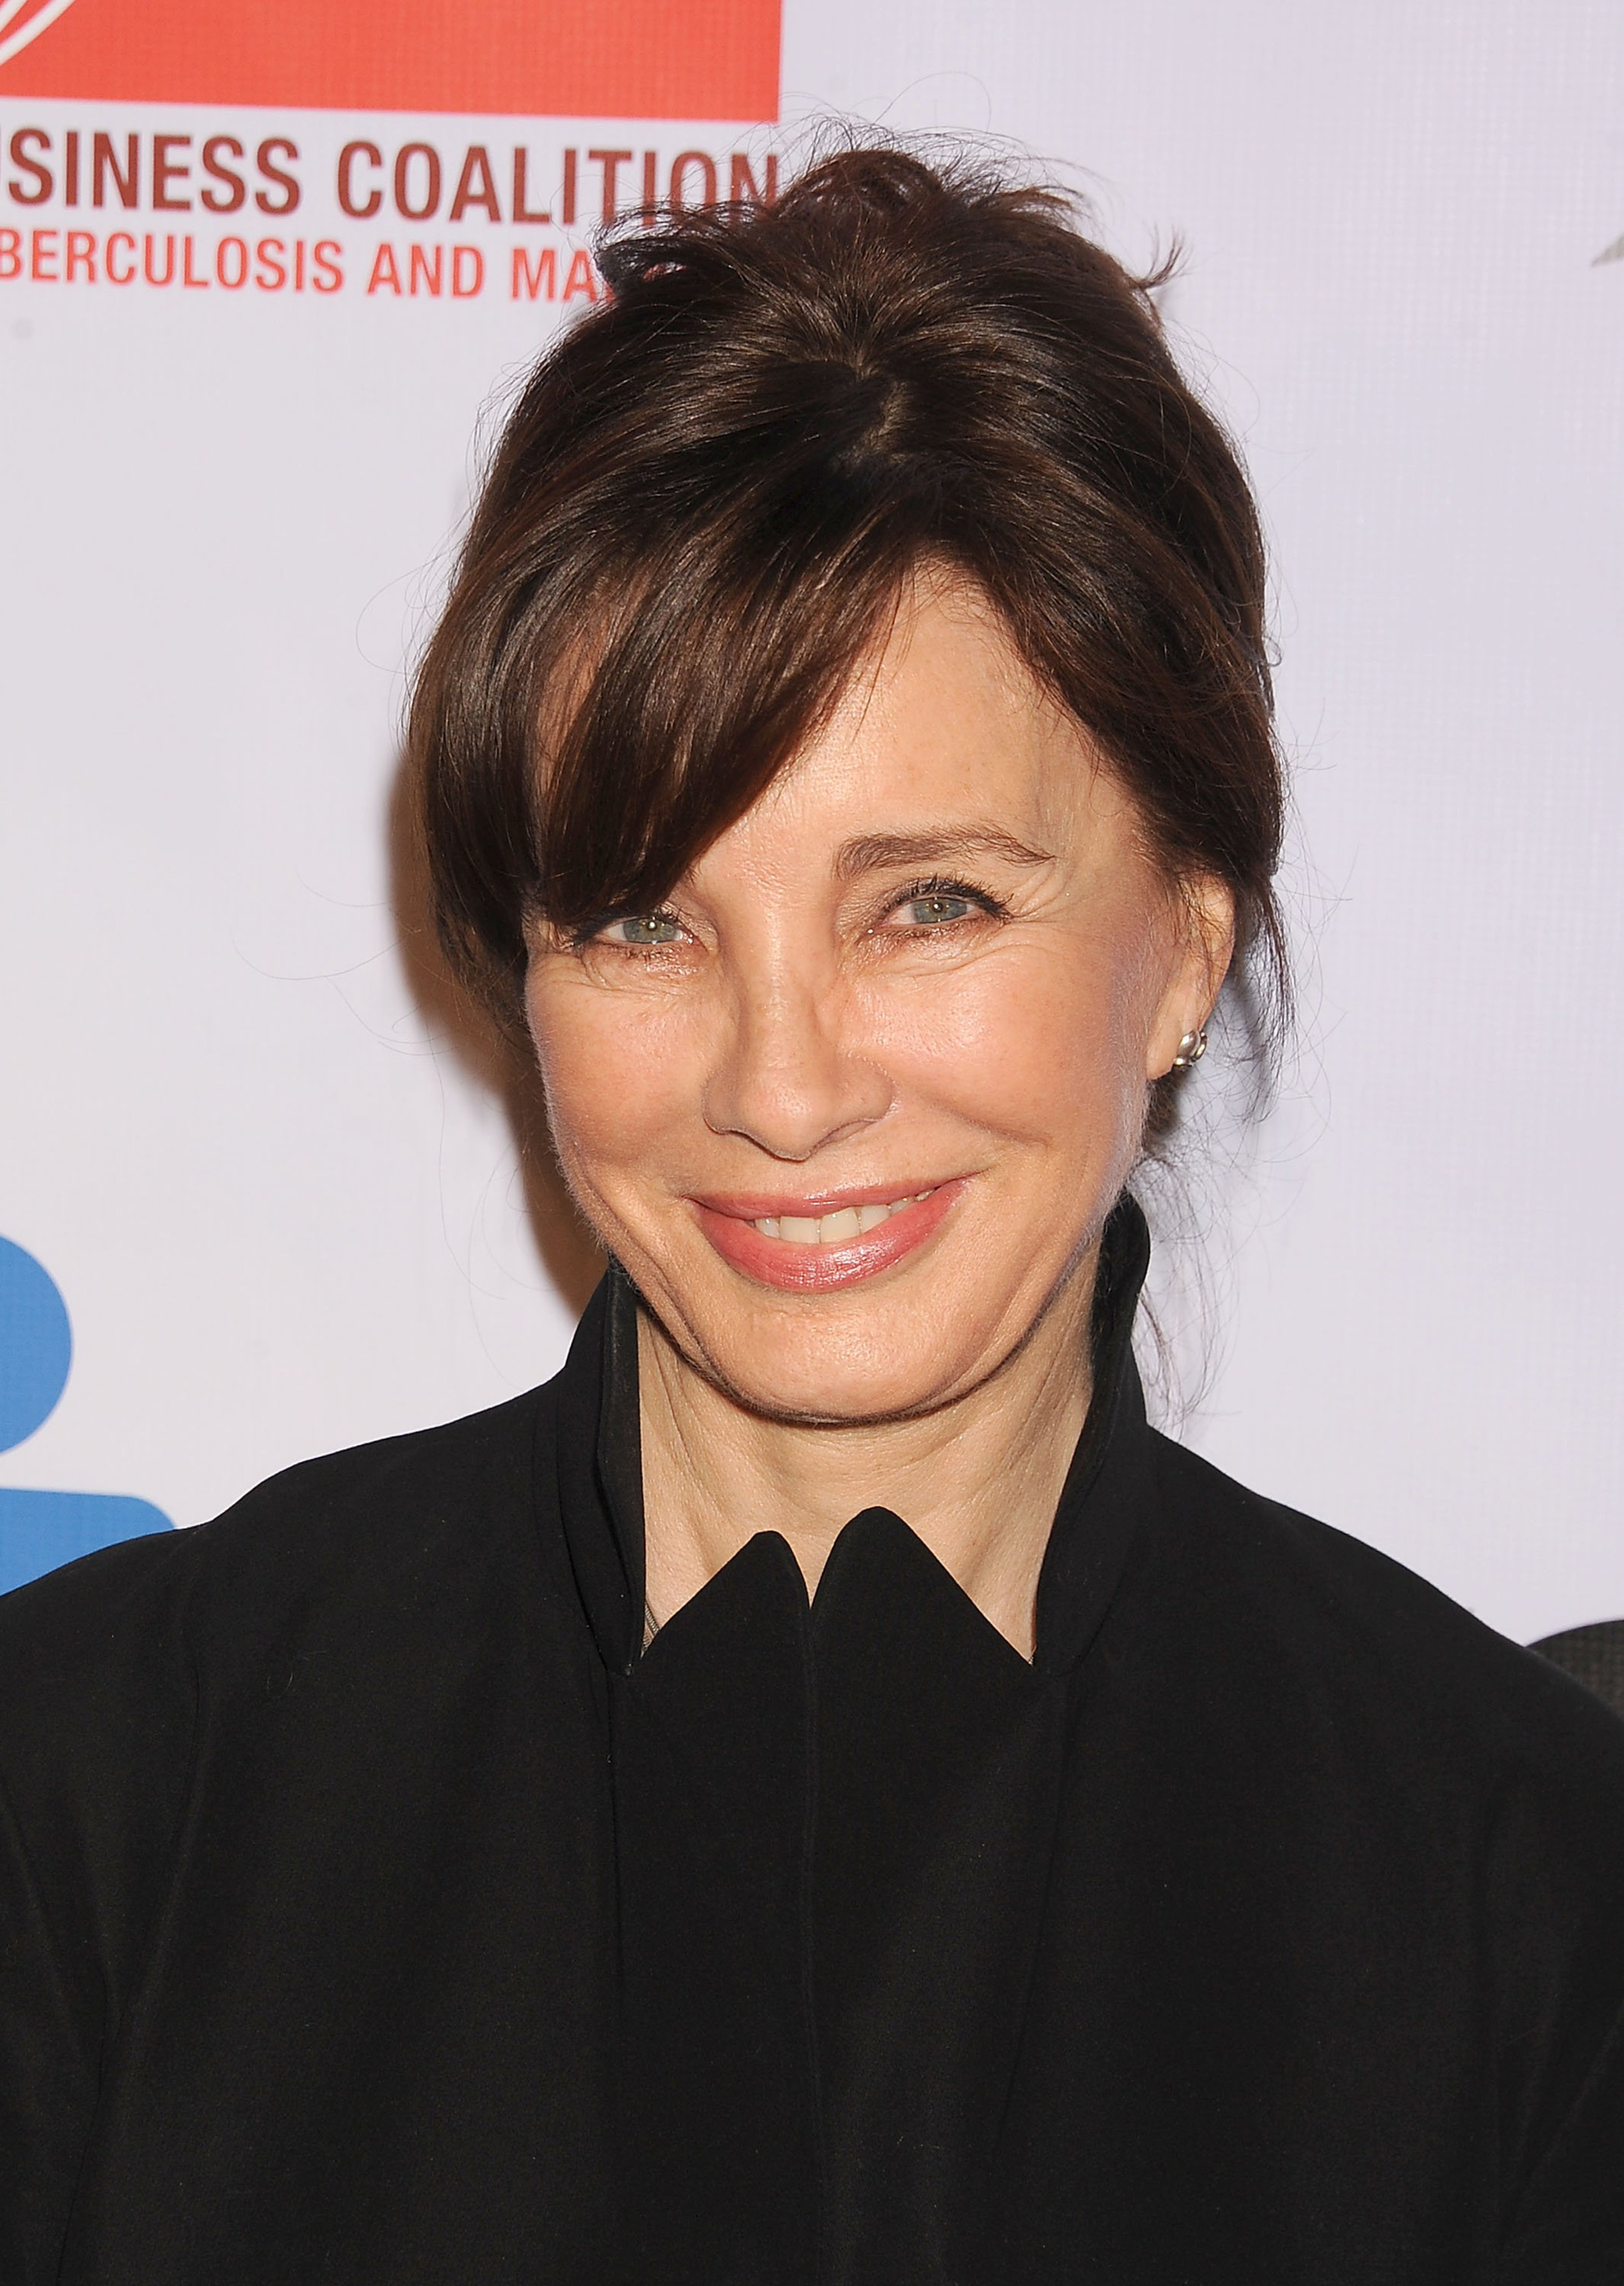 2017 fashion over 60 - Anne Archer After Plastic Surgery Surgery Vip